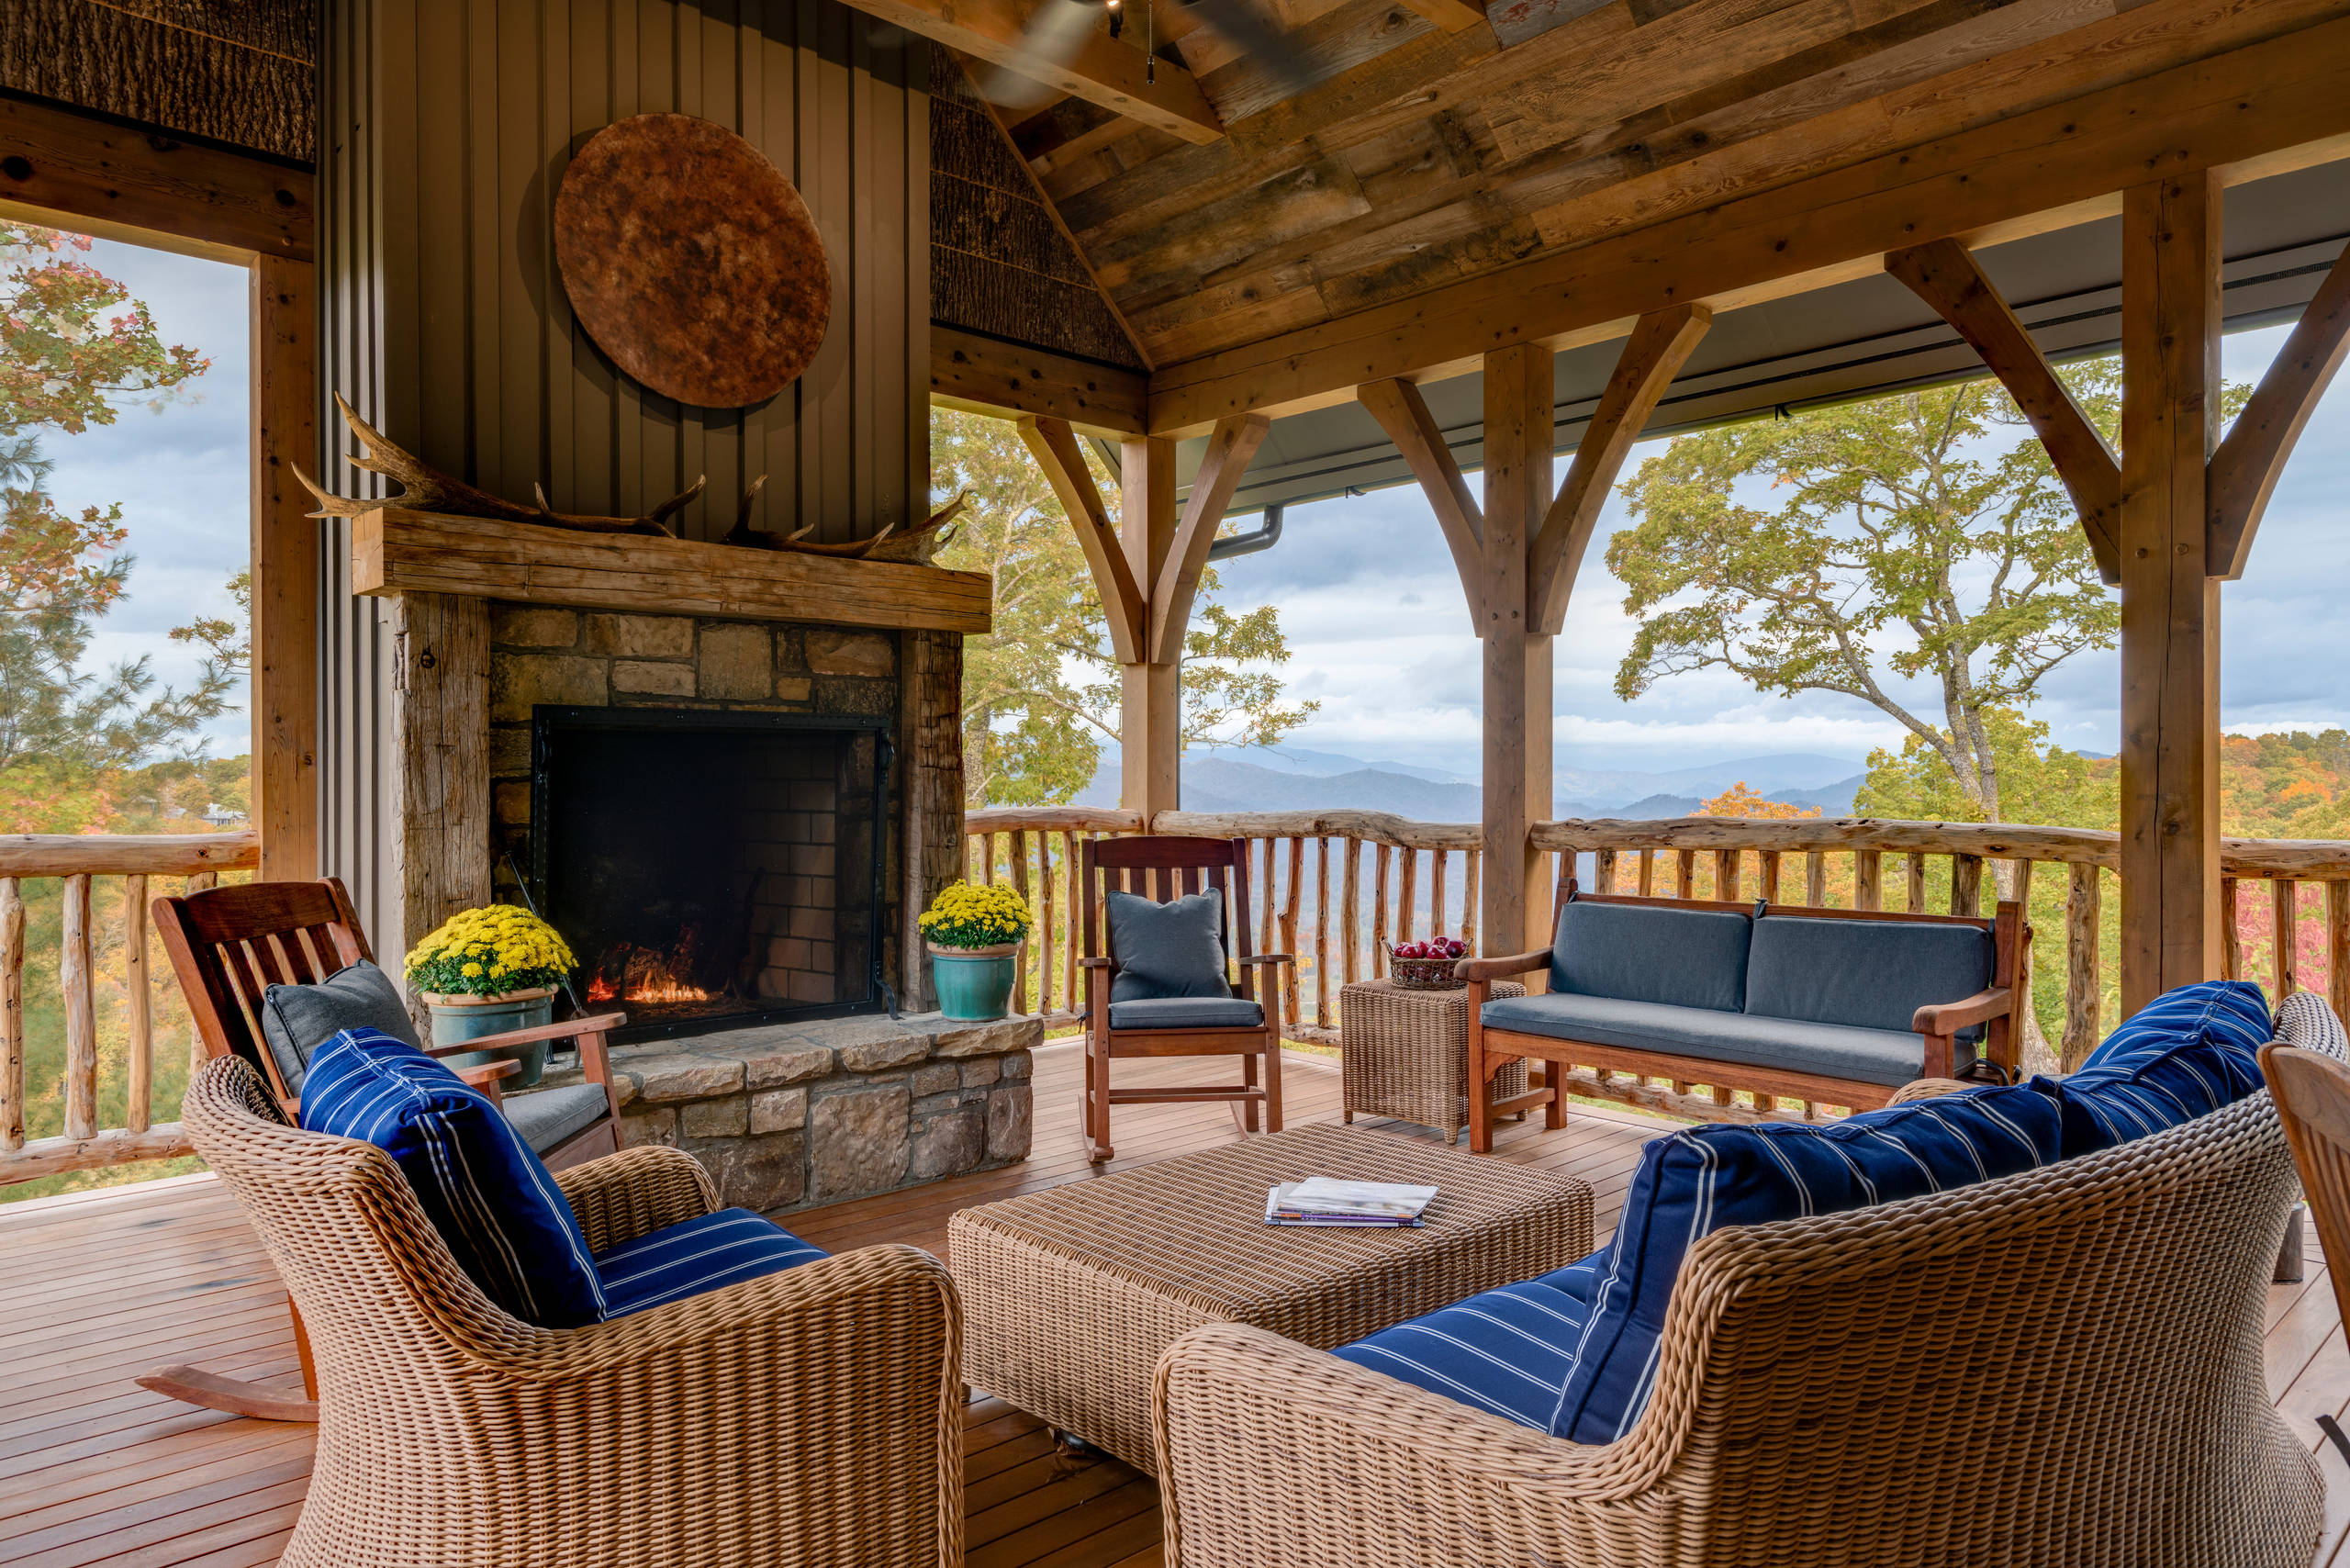 Home Deck Design Ideas: 15 Amazing Rustic Deck Designs That Will Enhance Your